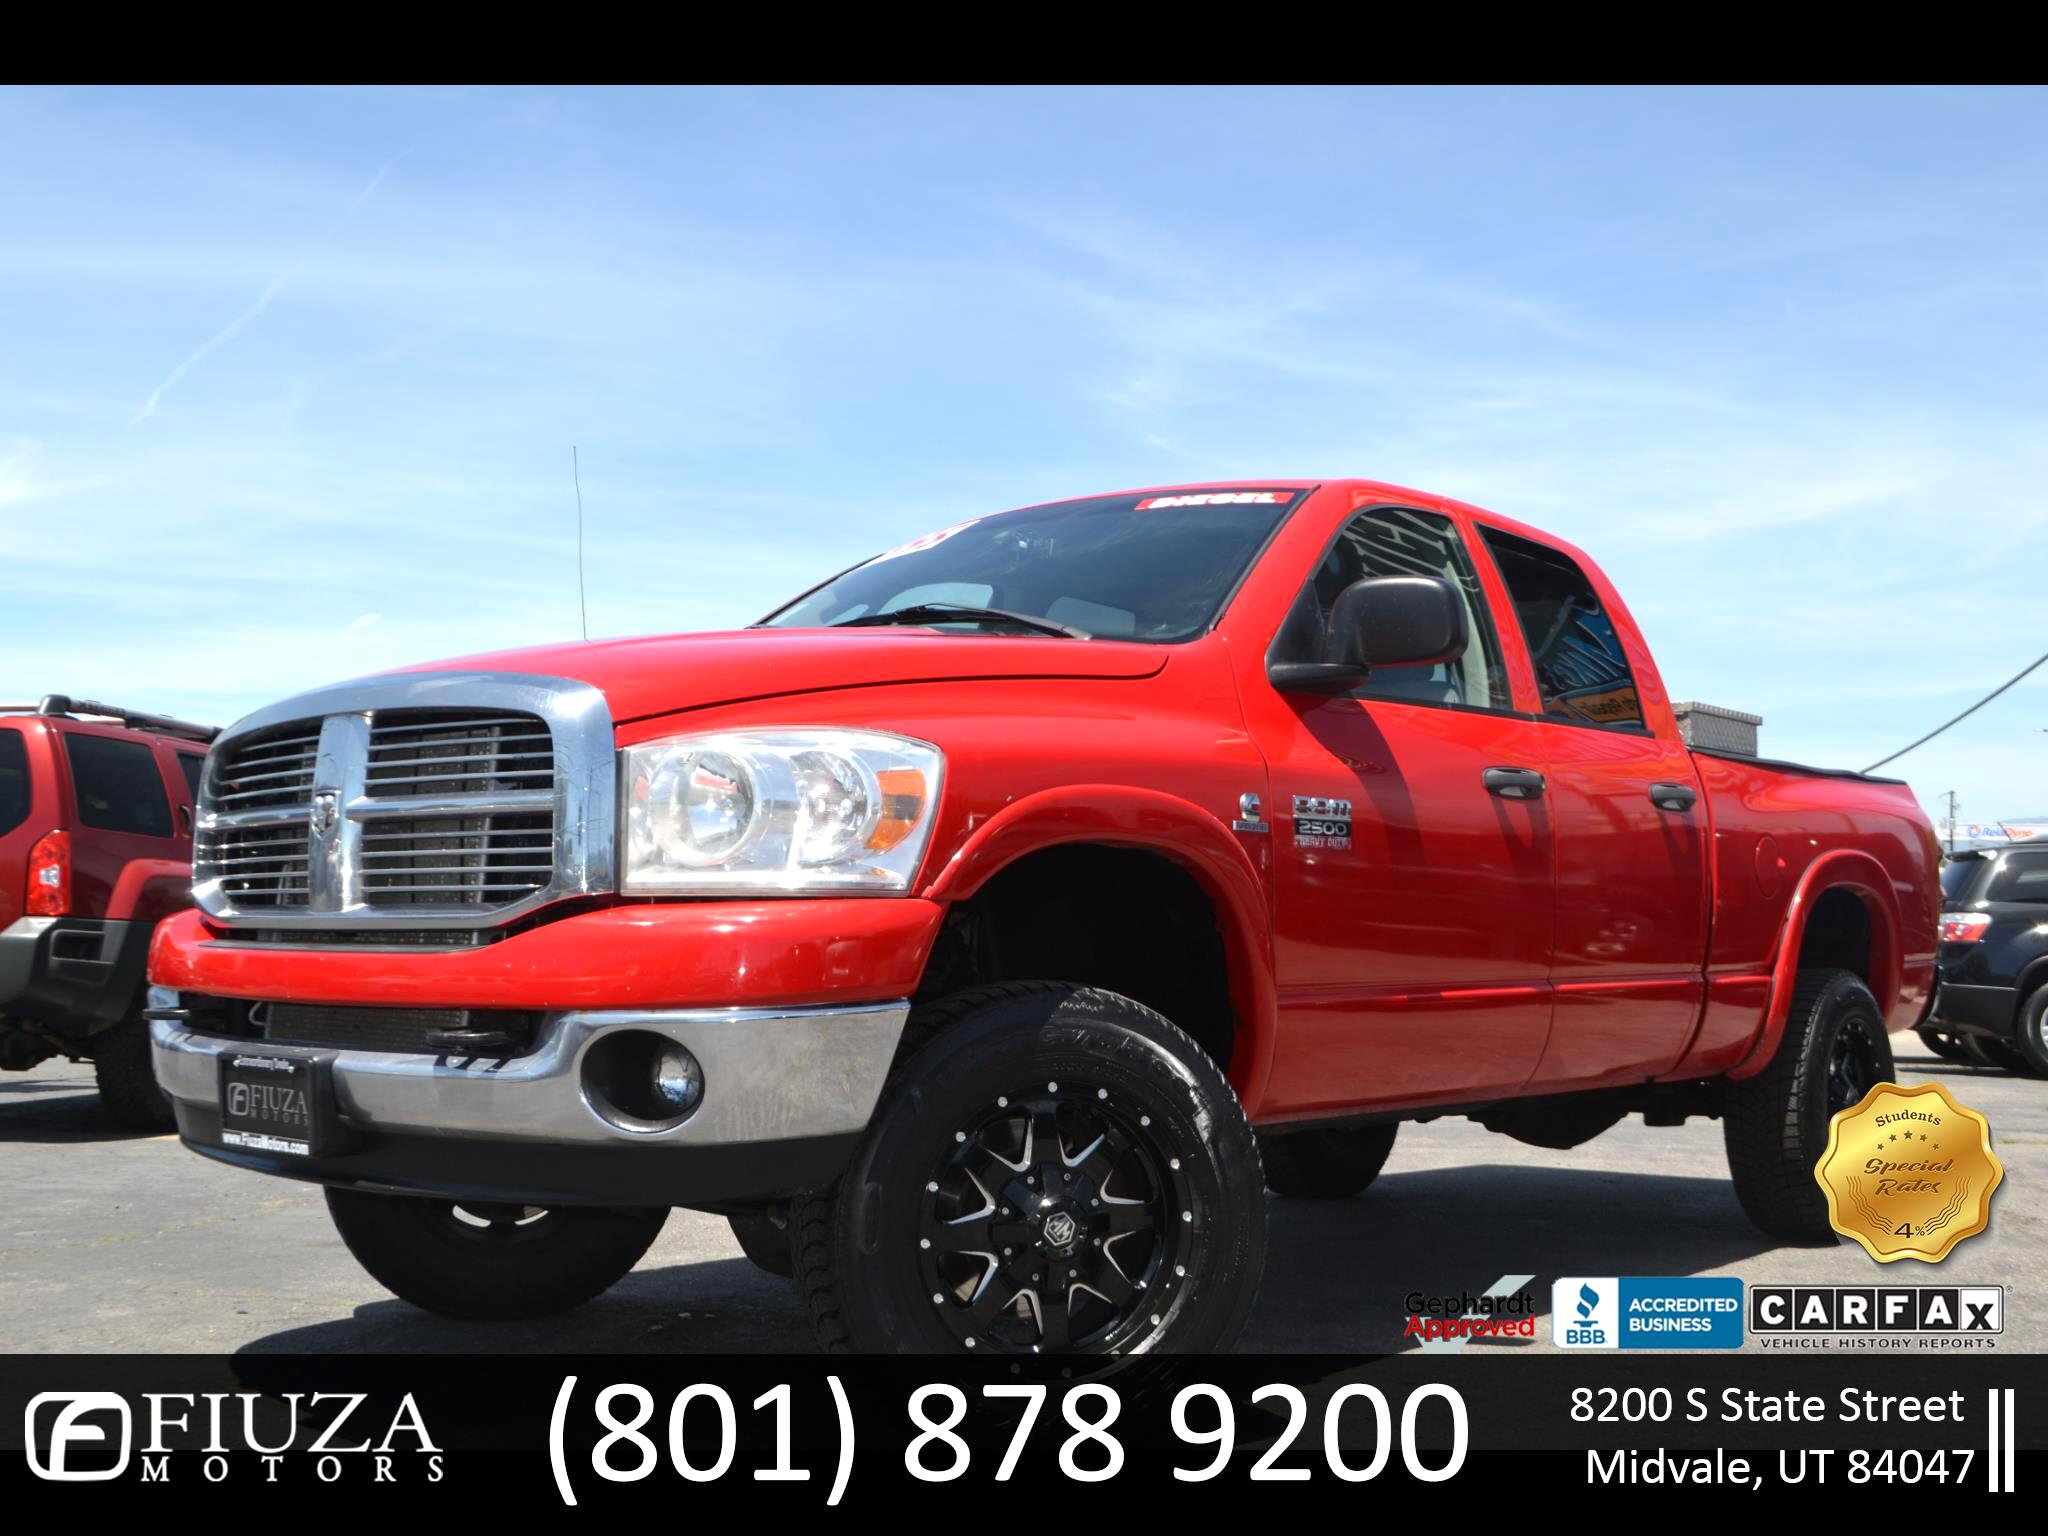 2008 Dodge Ram 2500 SLT Quad Cab Long Bed 4WD